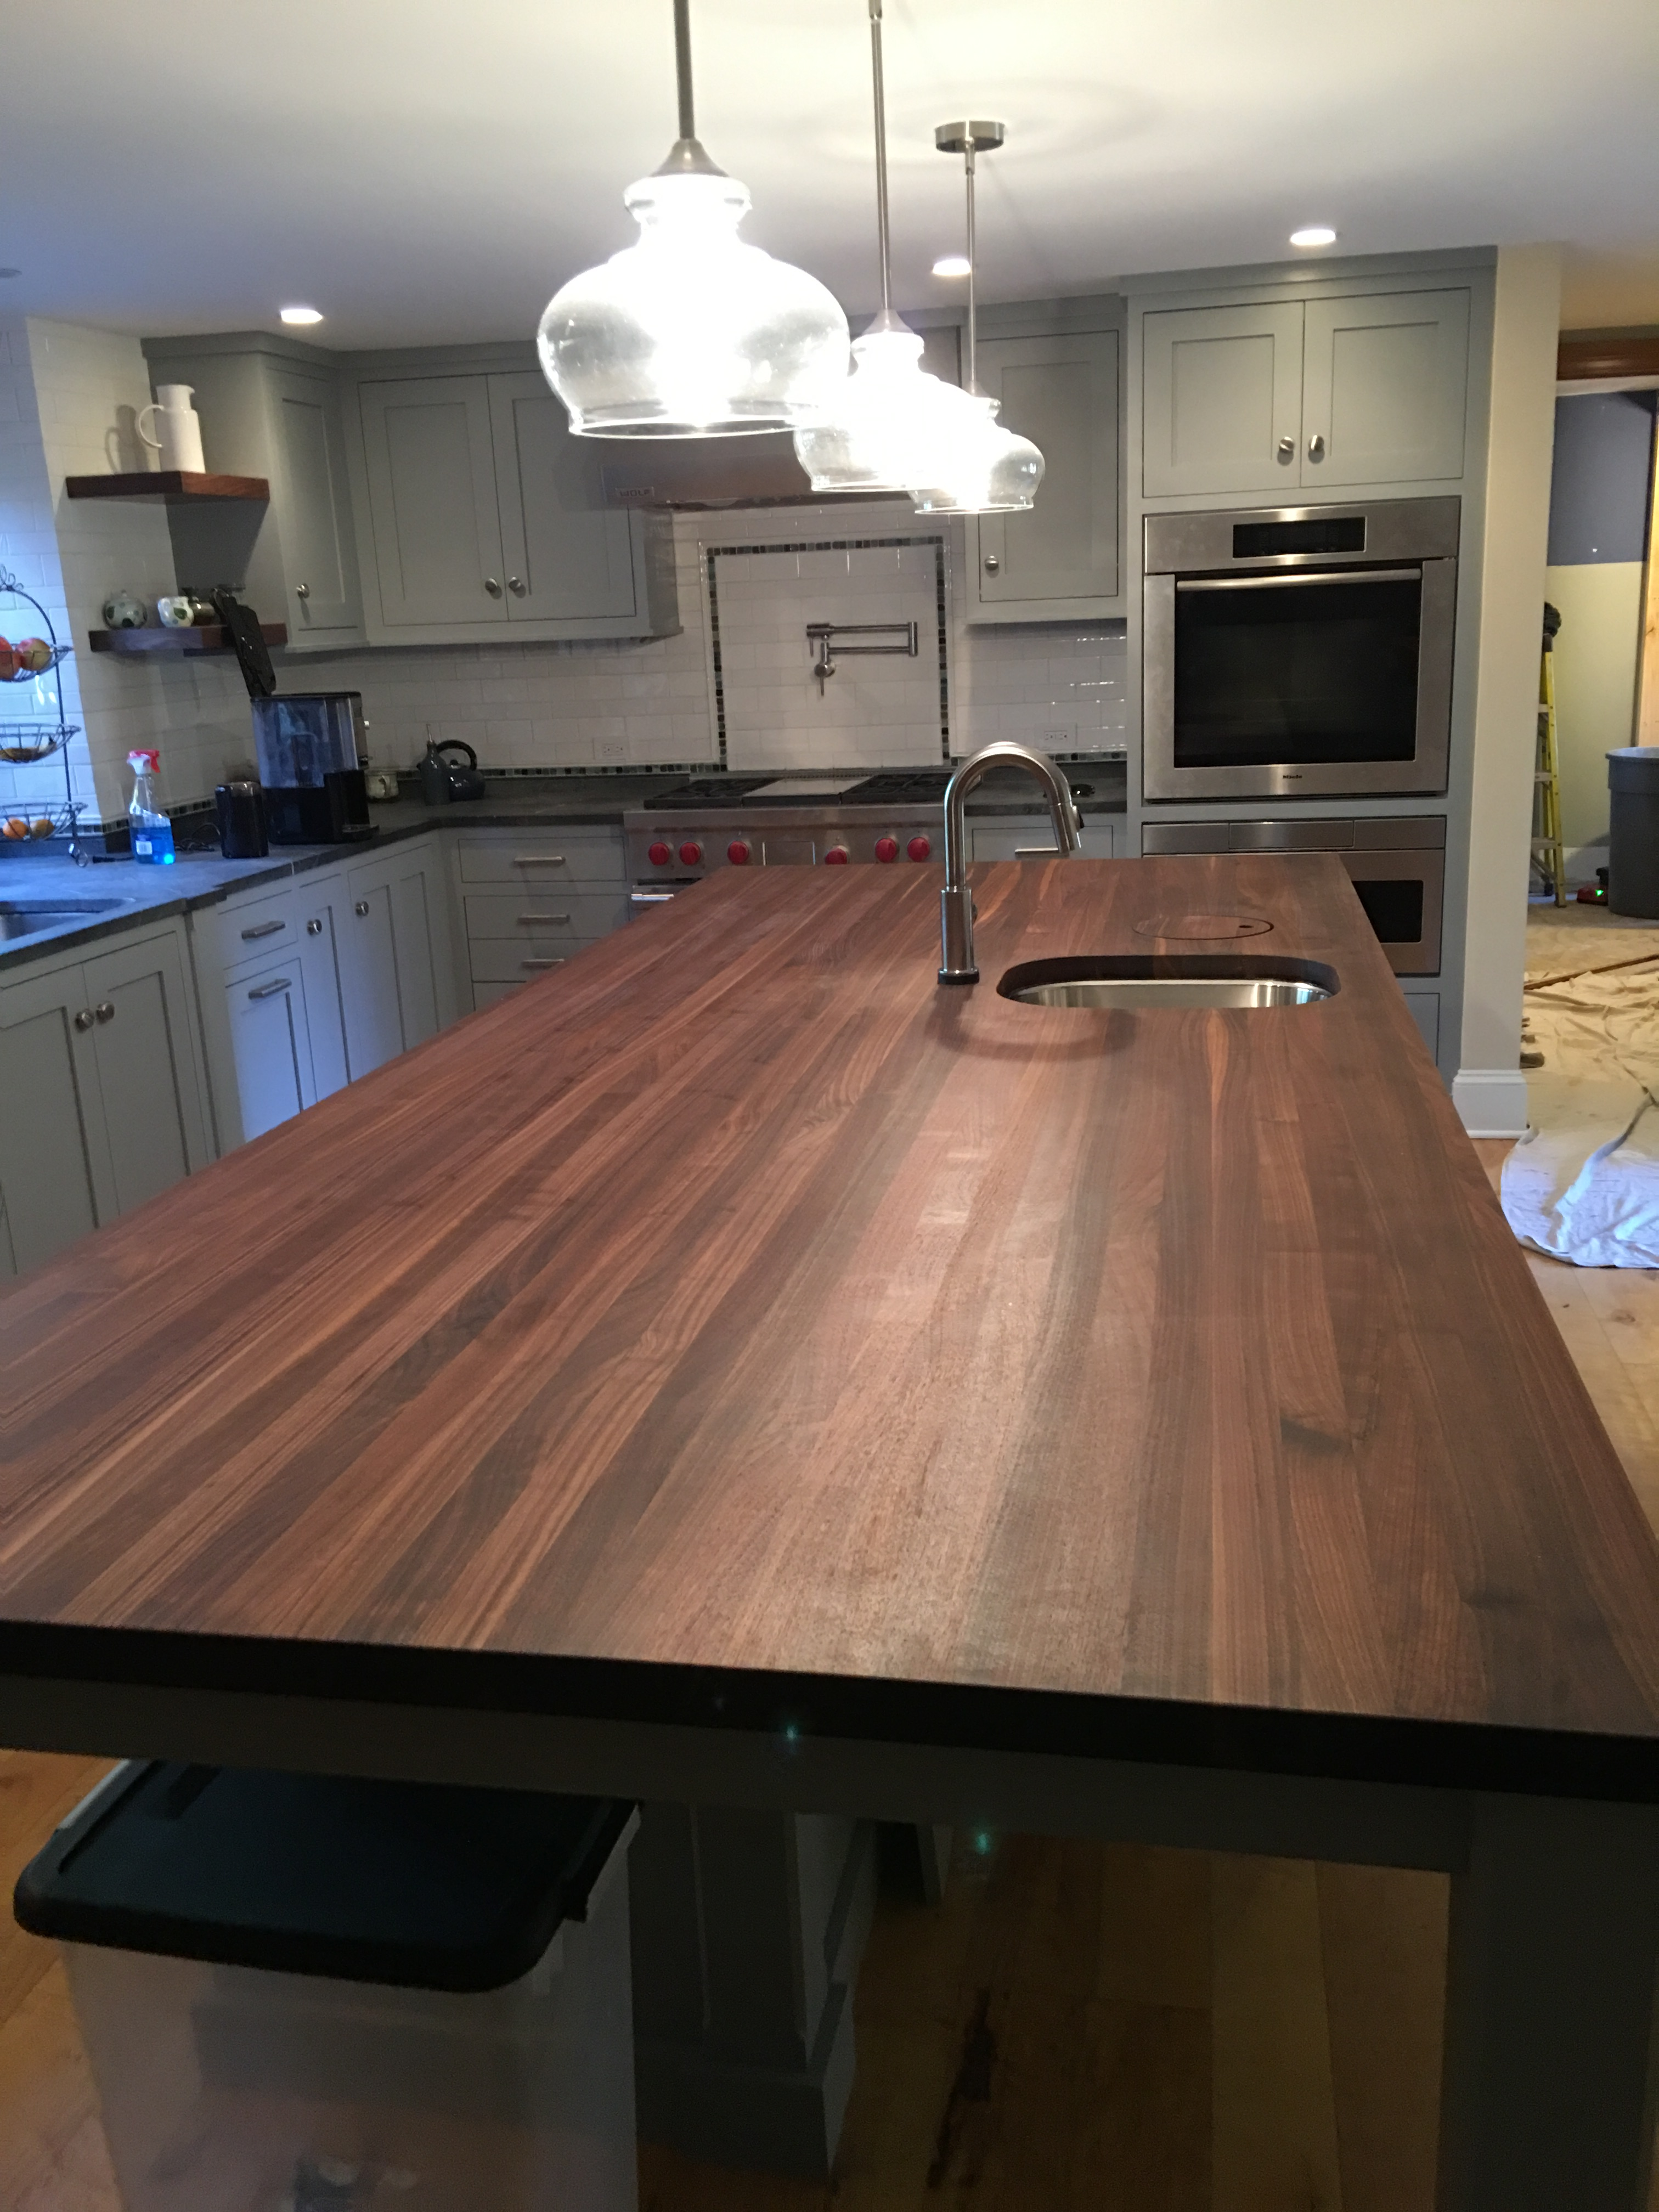 Sensational Superior Woodcraft Photos From The Field Doylestown Home Interior And Landscaping Ologienasavecom